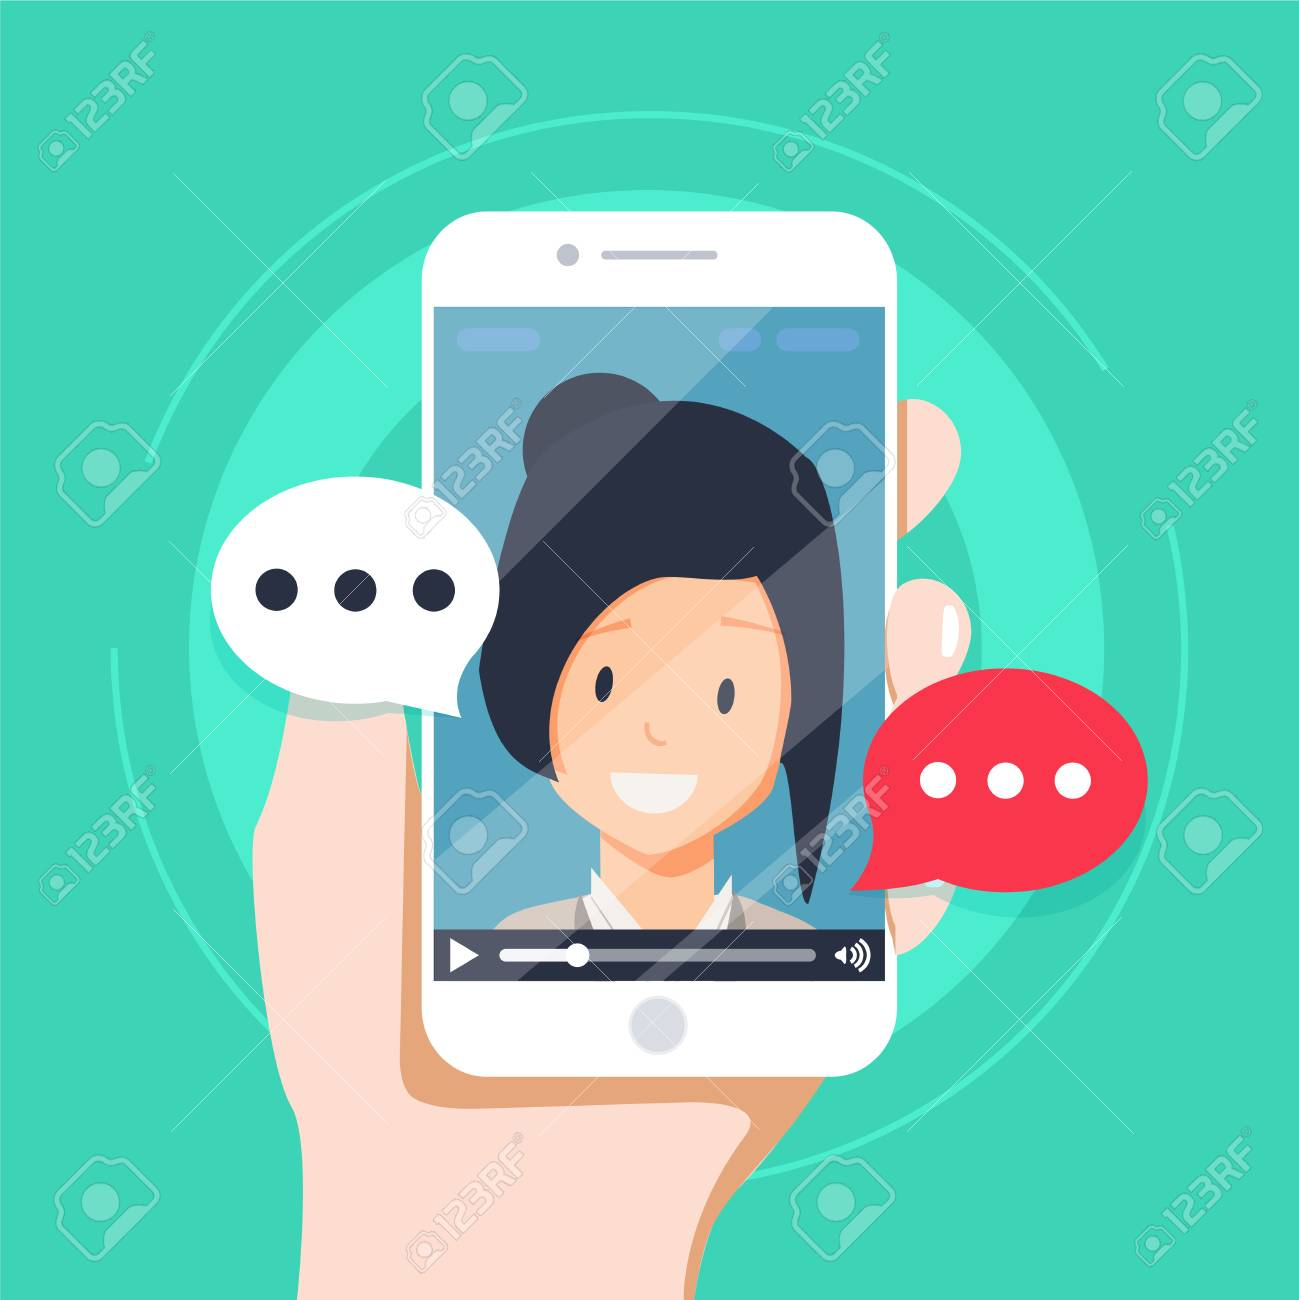 Video Chatting Online On Smartphone Vector Illustration Flat